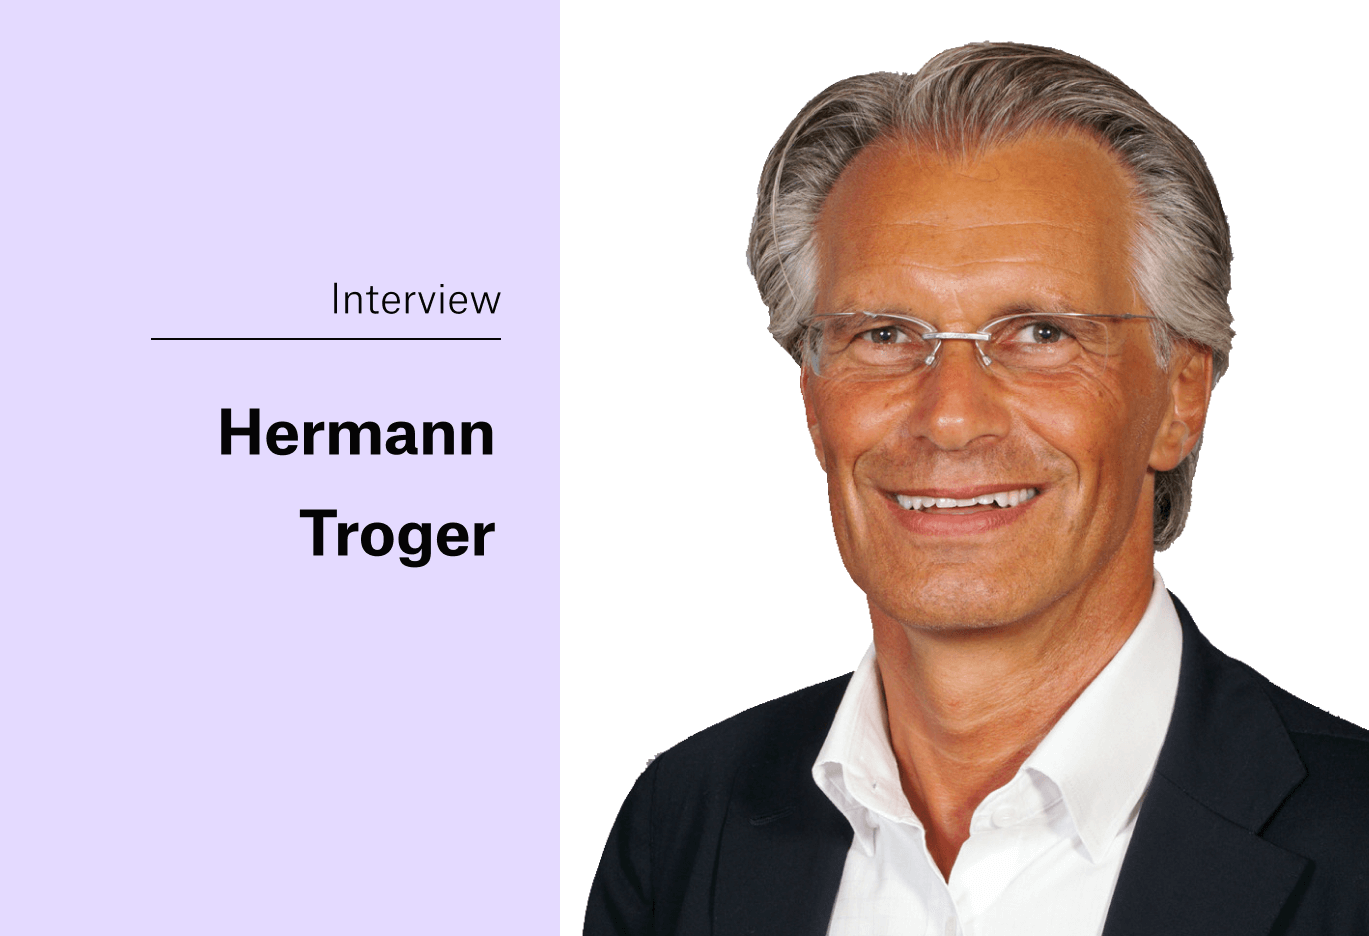 Human Resource Management of the Future - An Interview with Hermann Troger